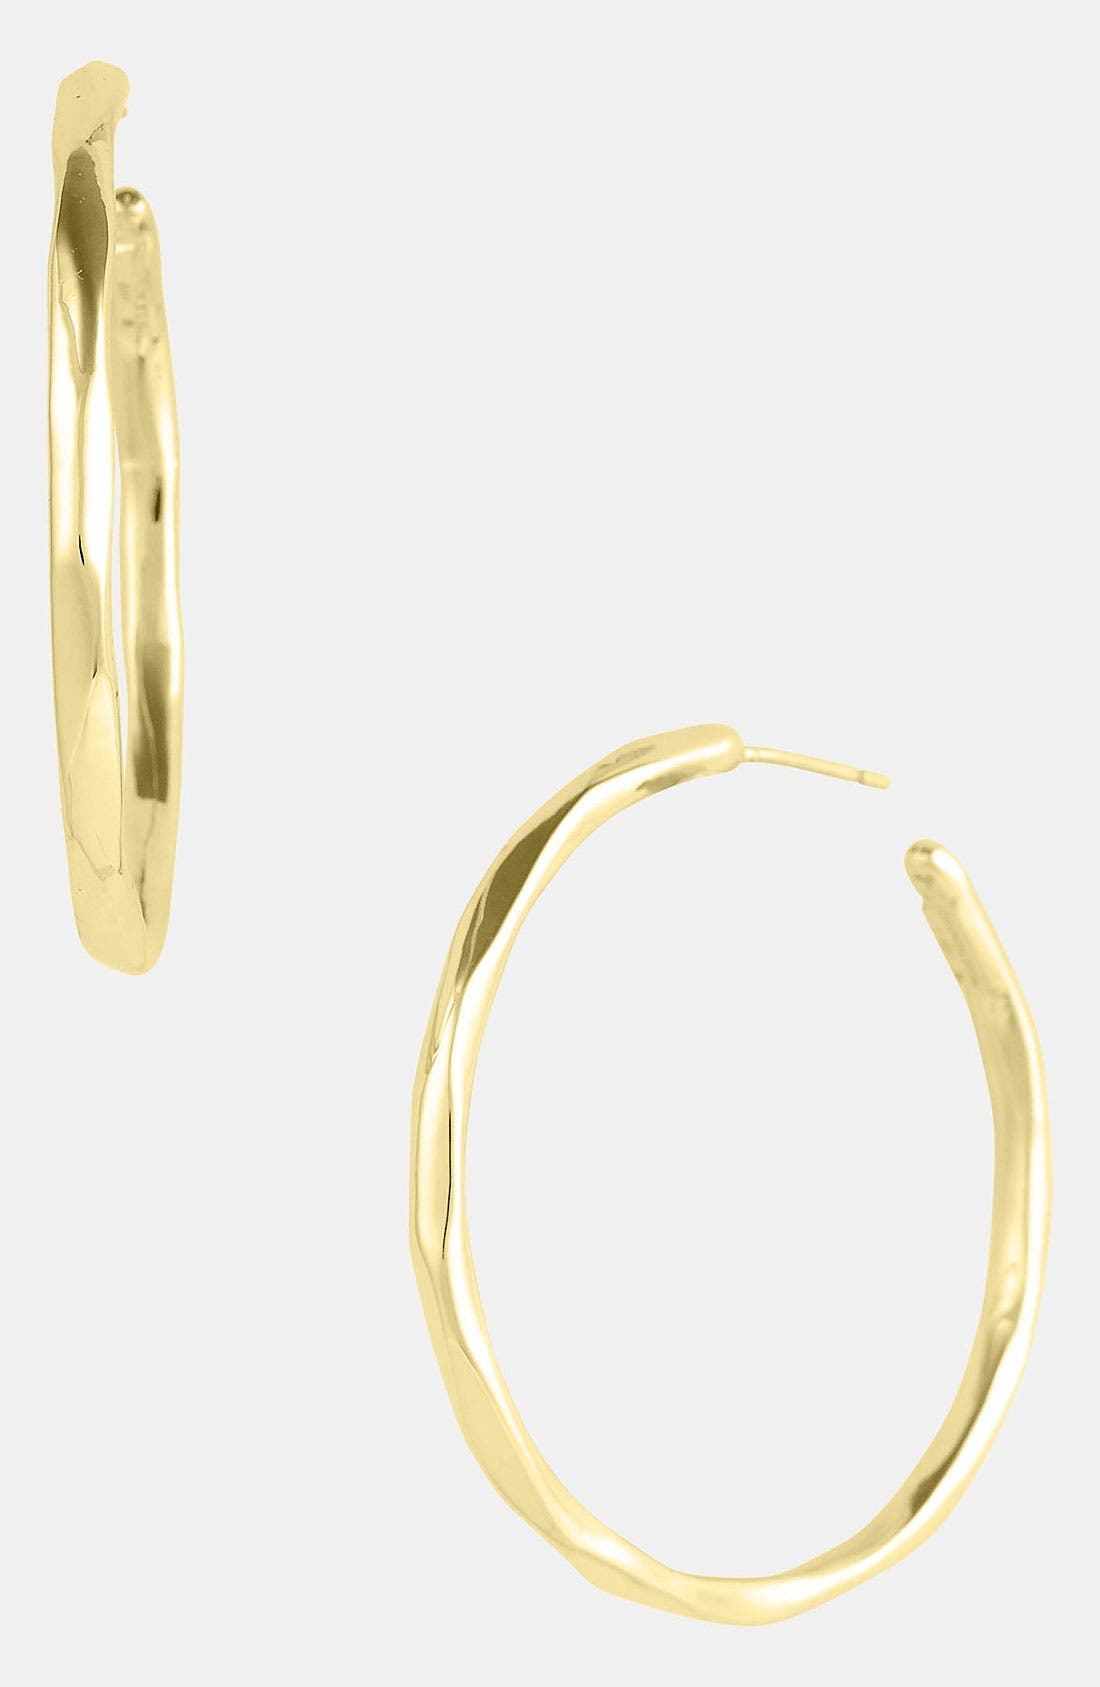 Main Image - Ippolita 'Glamazon - Number 3' Faceted 18k Gold Hoop Earrings